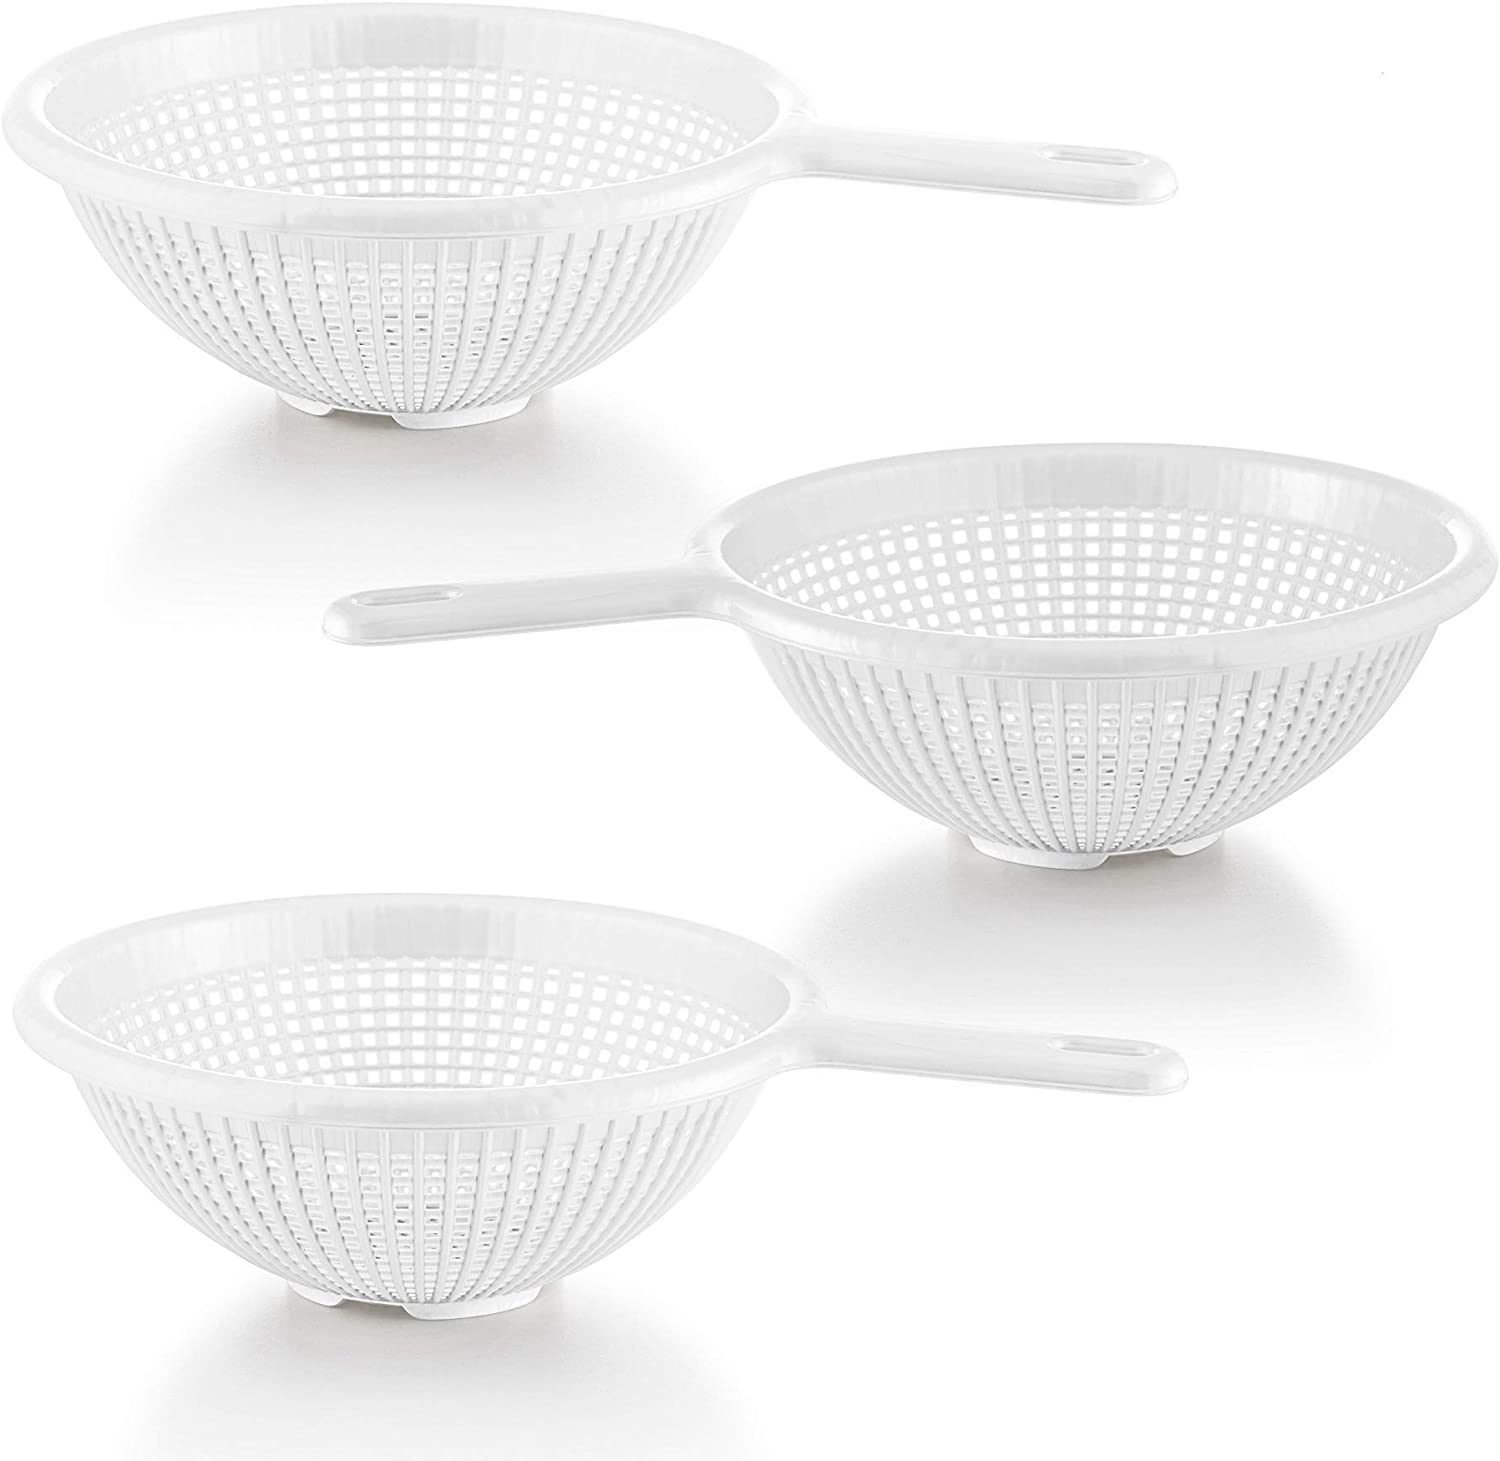 YBM Home 8.5 Inch Plastic Strainer Colander with Long Handle – Made of Food Safe BPA-Free Plastic - Use for Pasta, Noodles, Spaghetti, Vegetables and More 31-1129-white-3 (3, White)